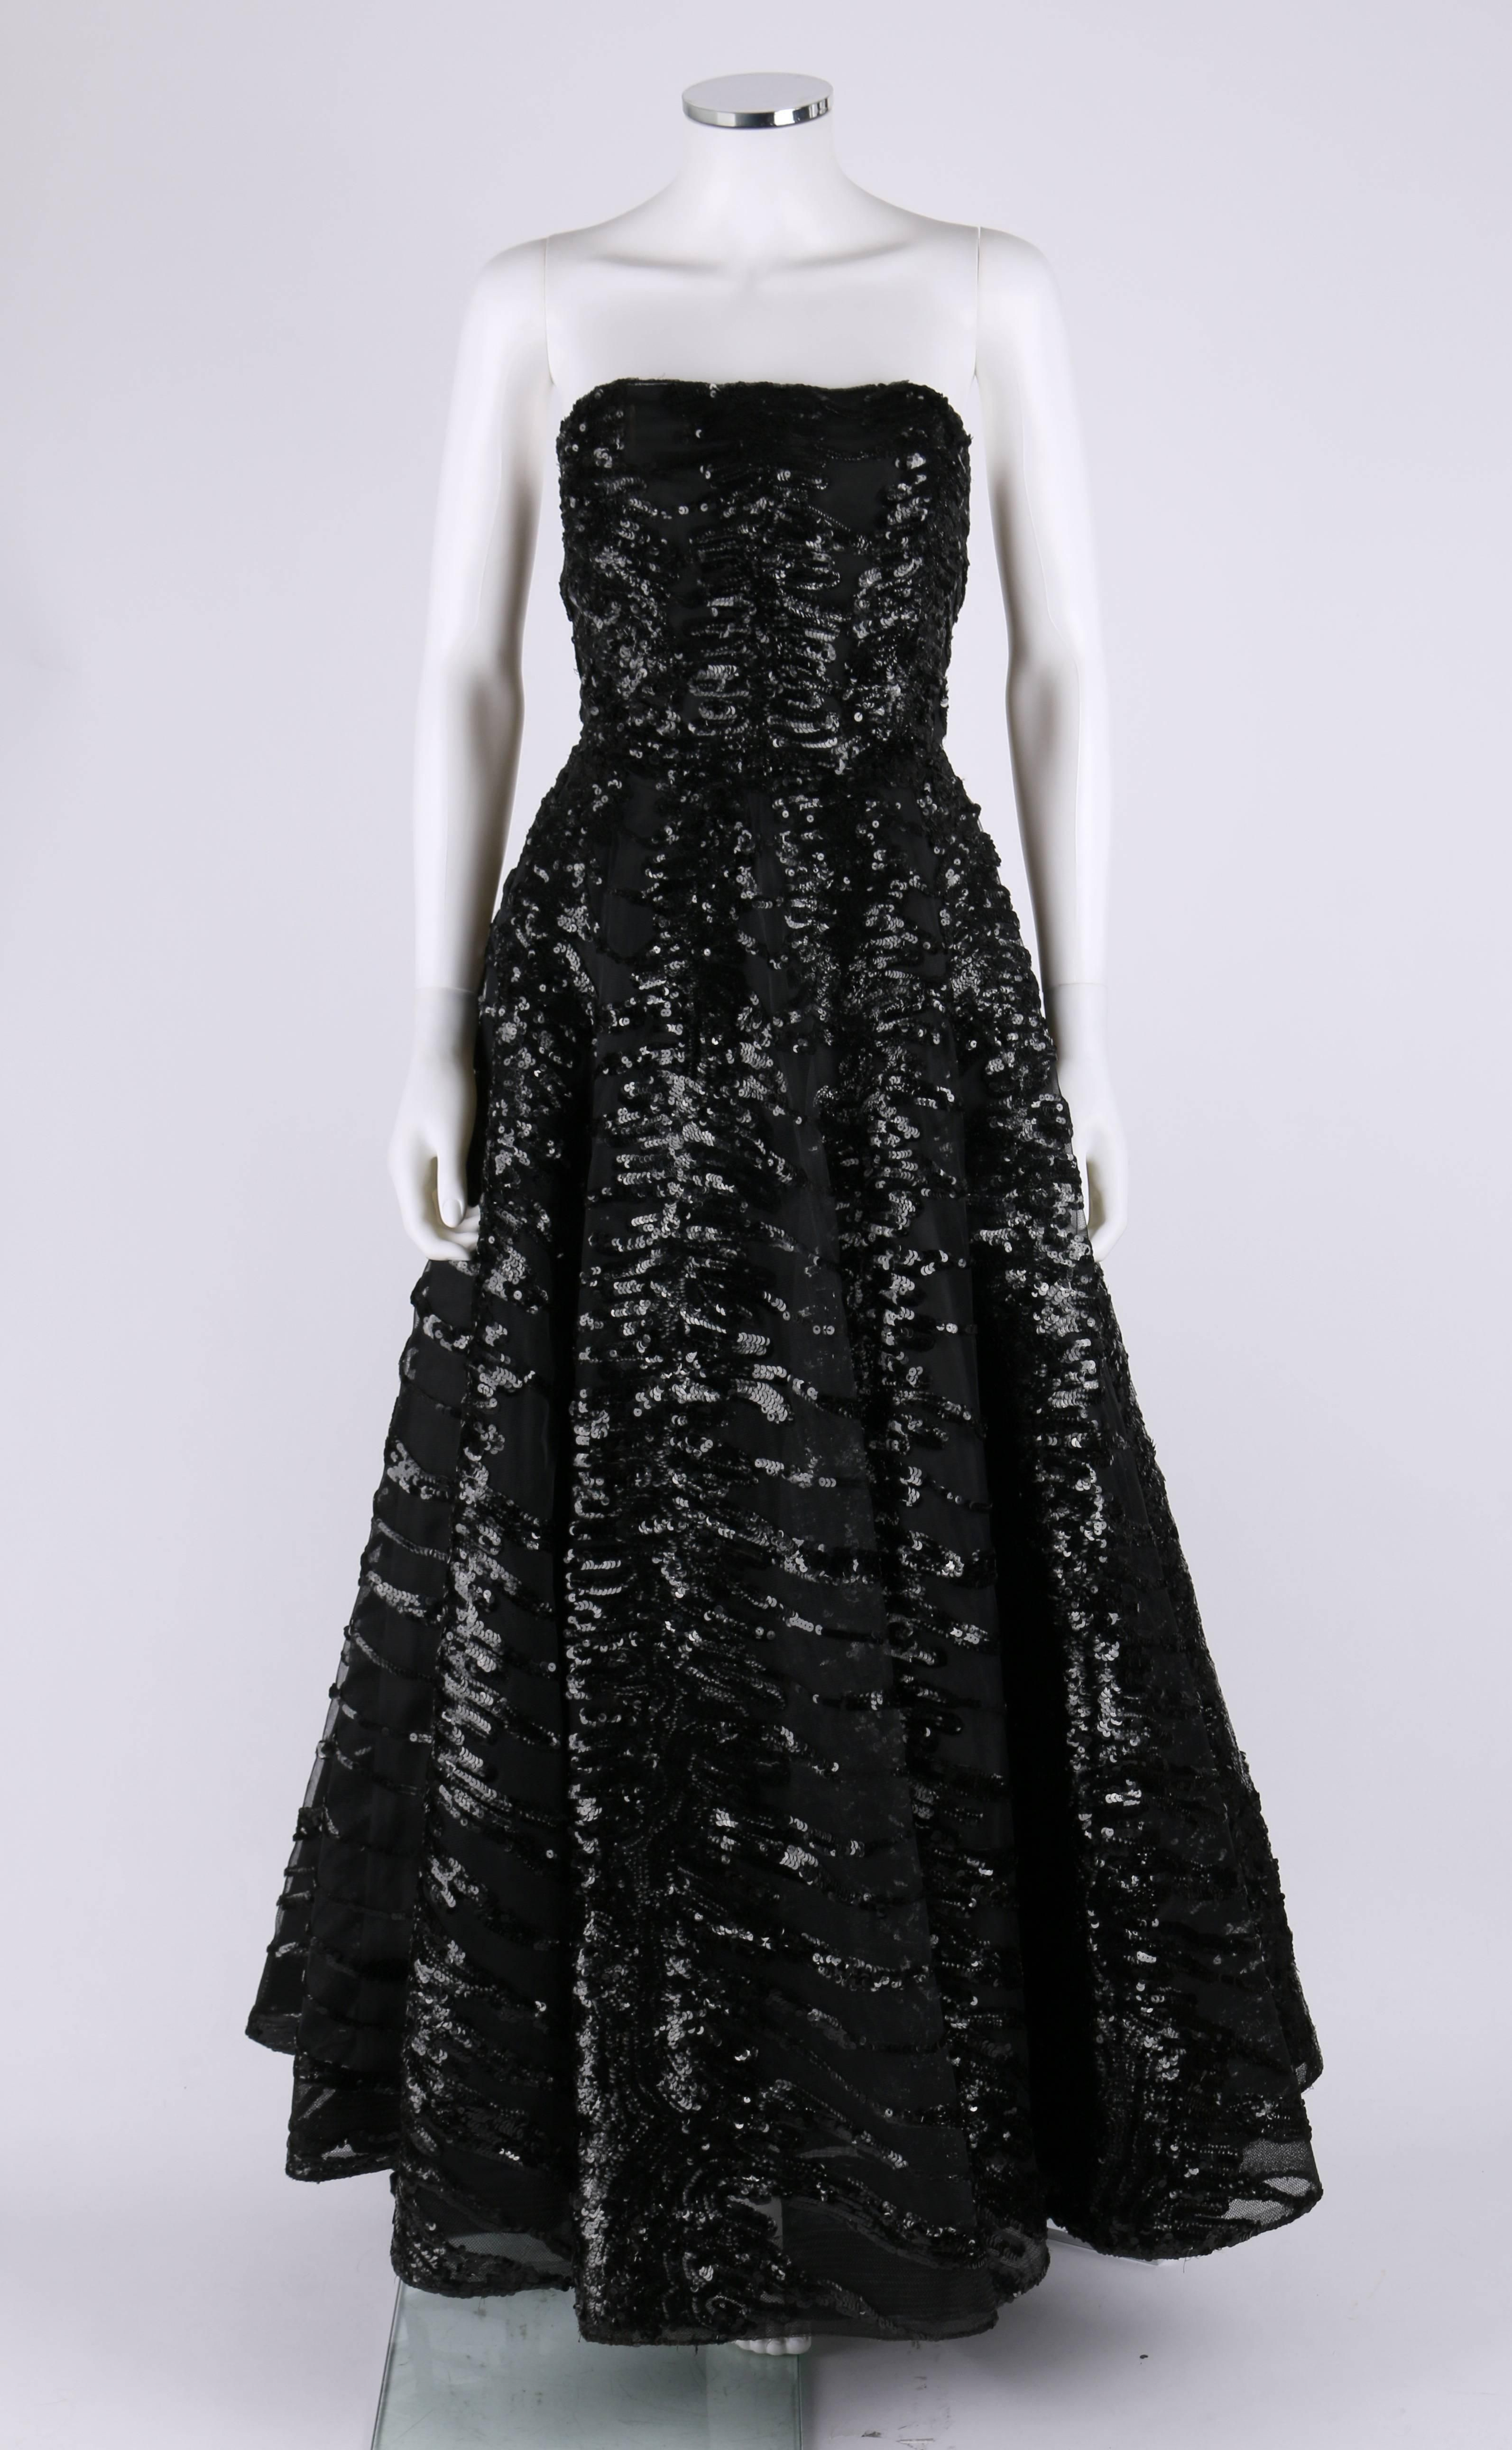 6558c6742f HAUTE COUTURE 1950s Black Sequin Ball Gown Evening Theater Opera Party Dress  For Sale at 1stdibs